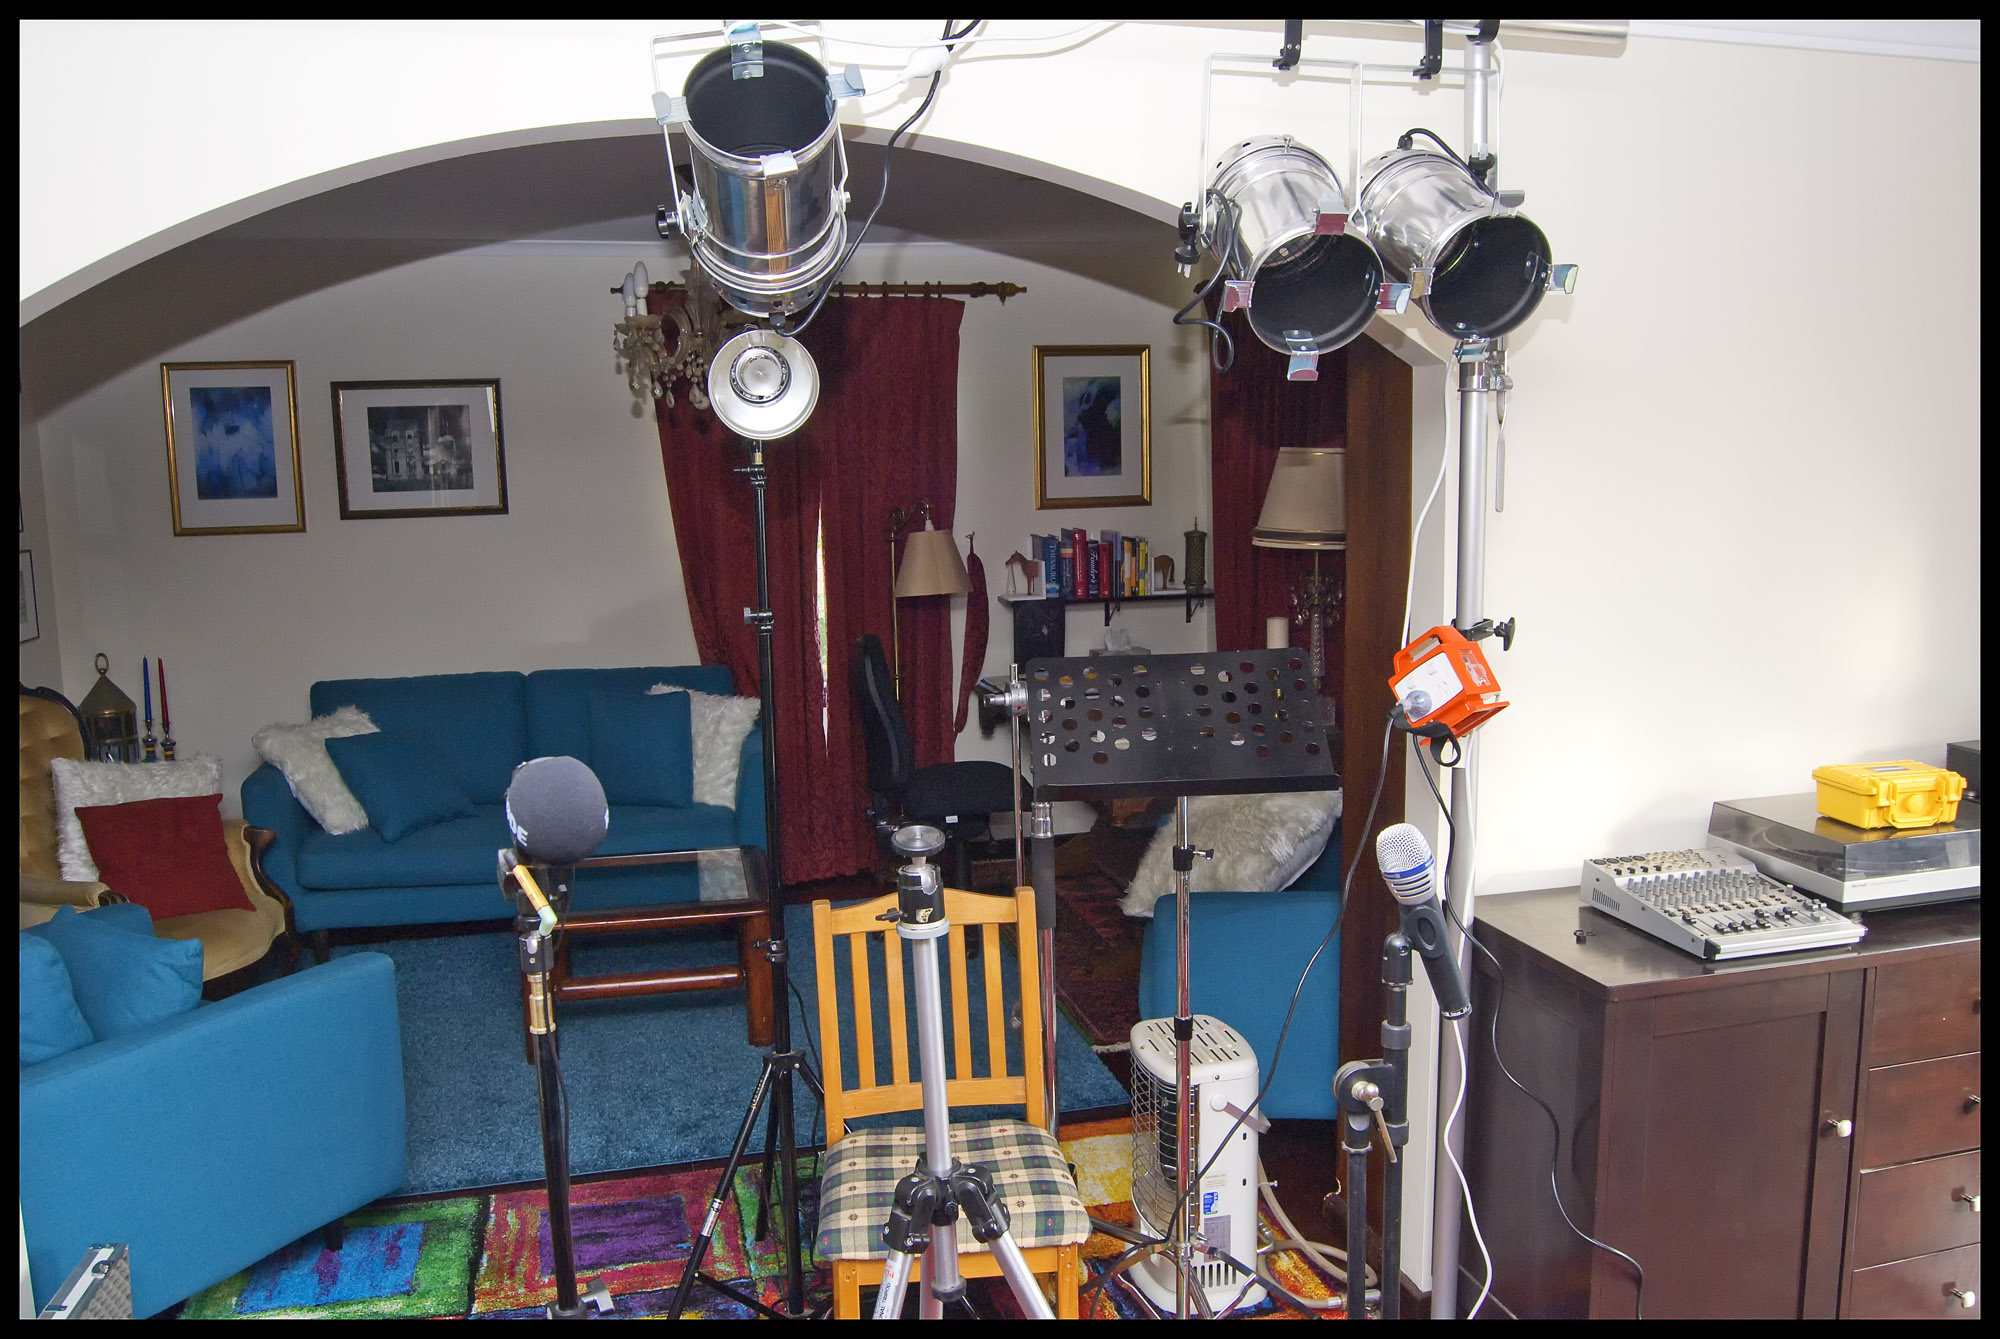 Georgia's recording set up